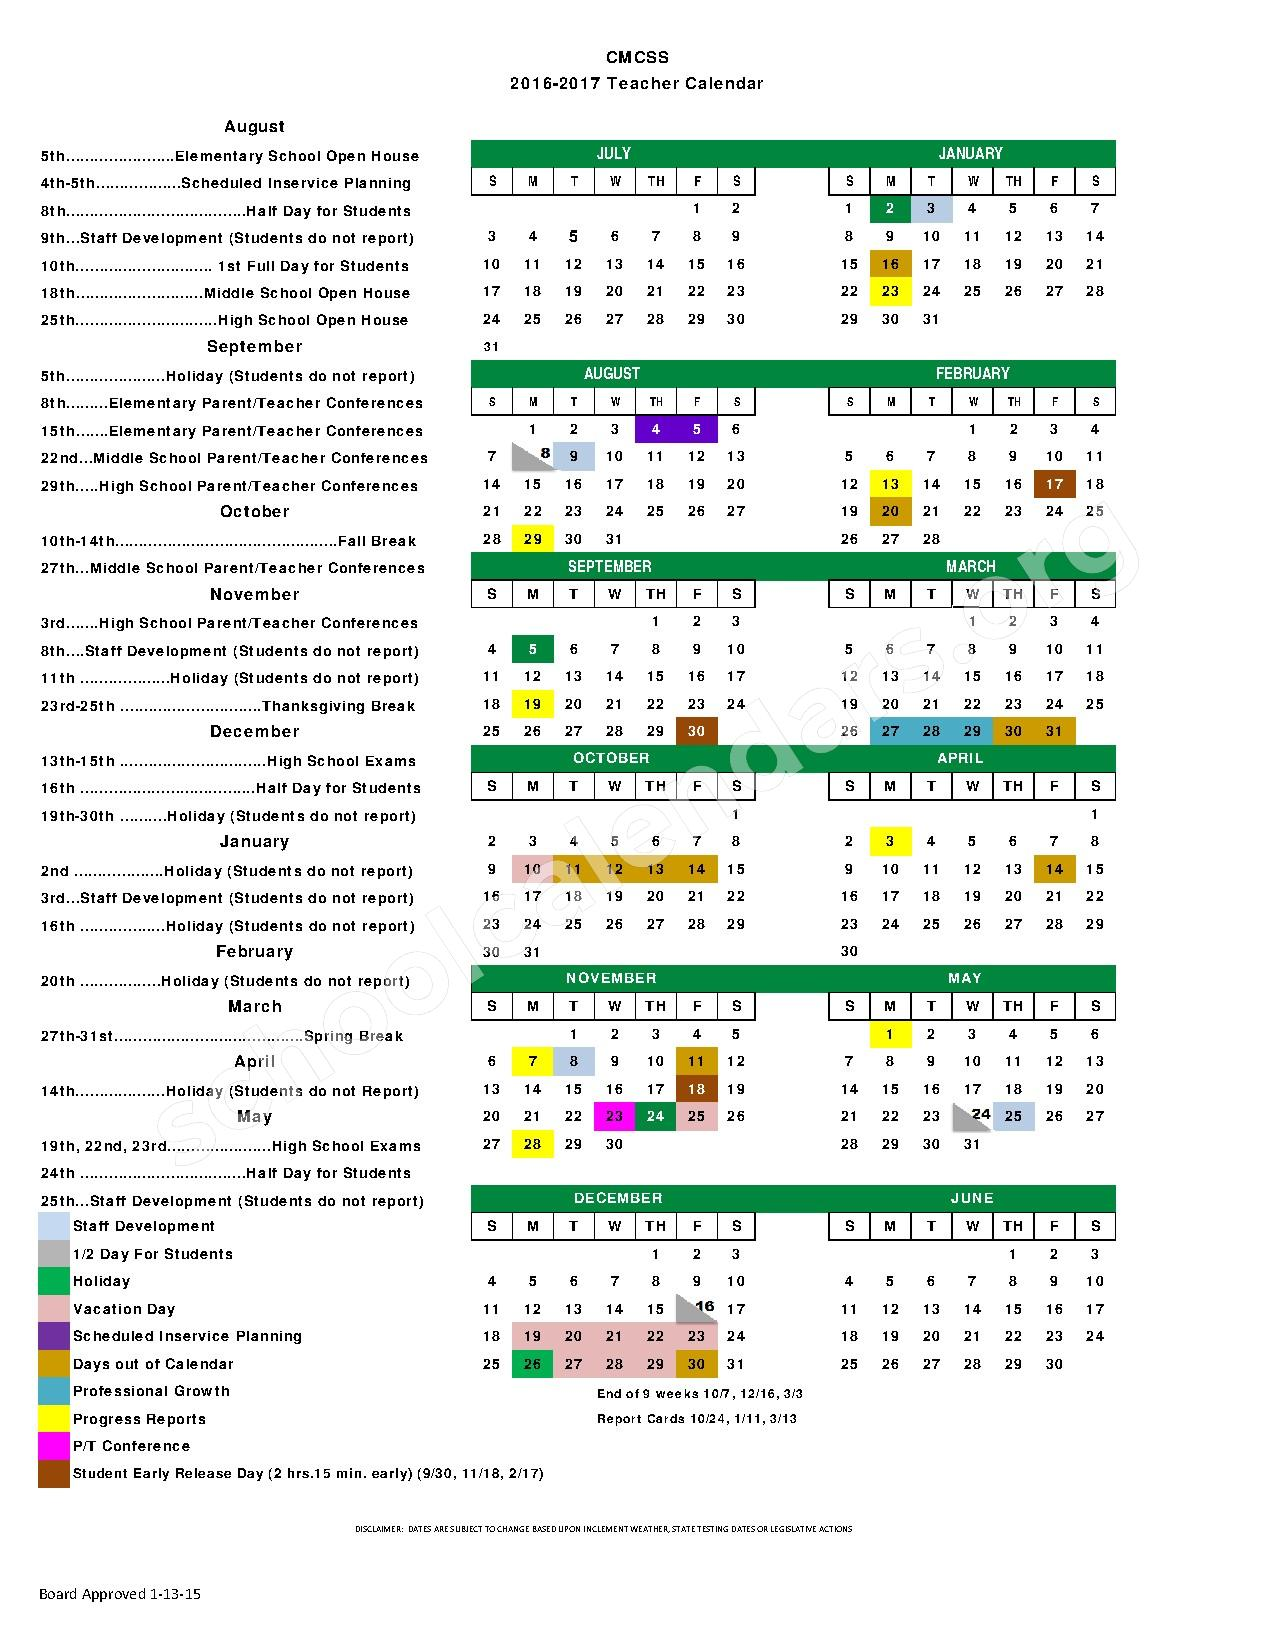 2016 - 2017 Teacher Calendar – Woodlawn Elementary School – page 1